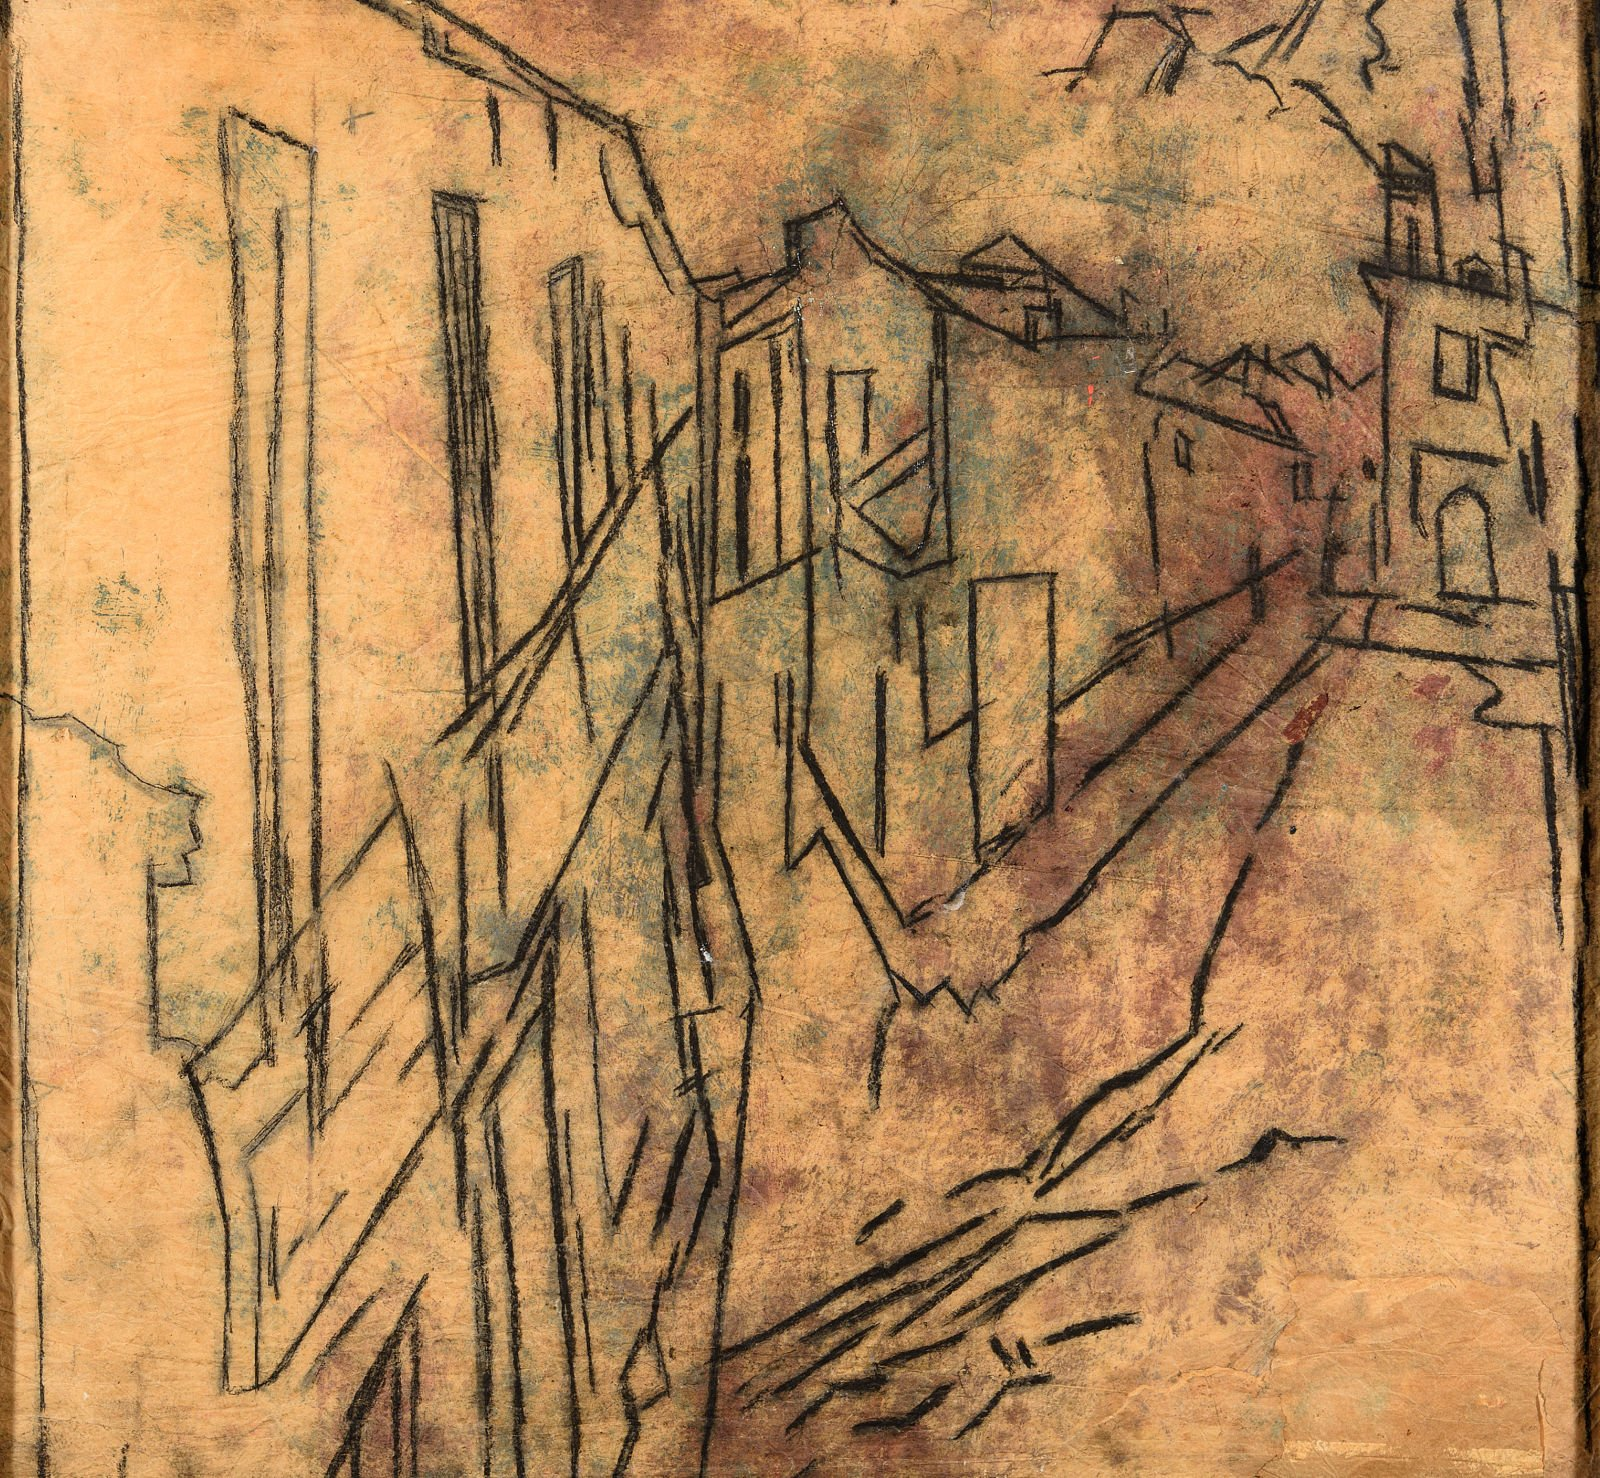 Charcoal and chalk sketch of a street in Rhona showing houses on the left and a mountain in the background by David Bomberg